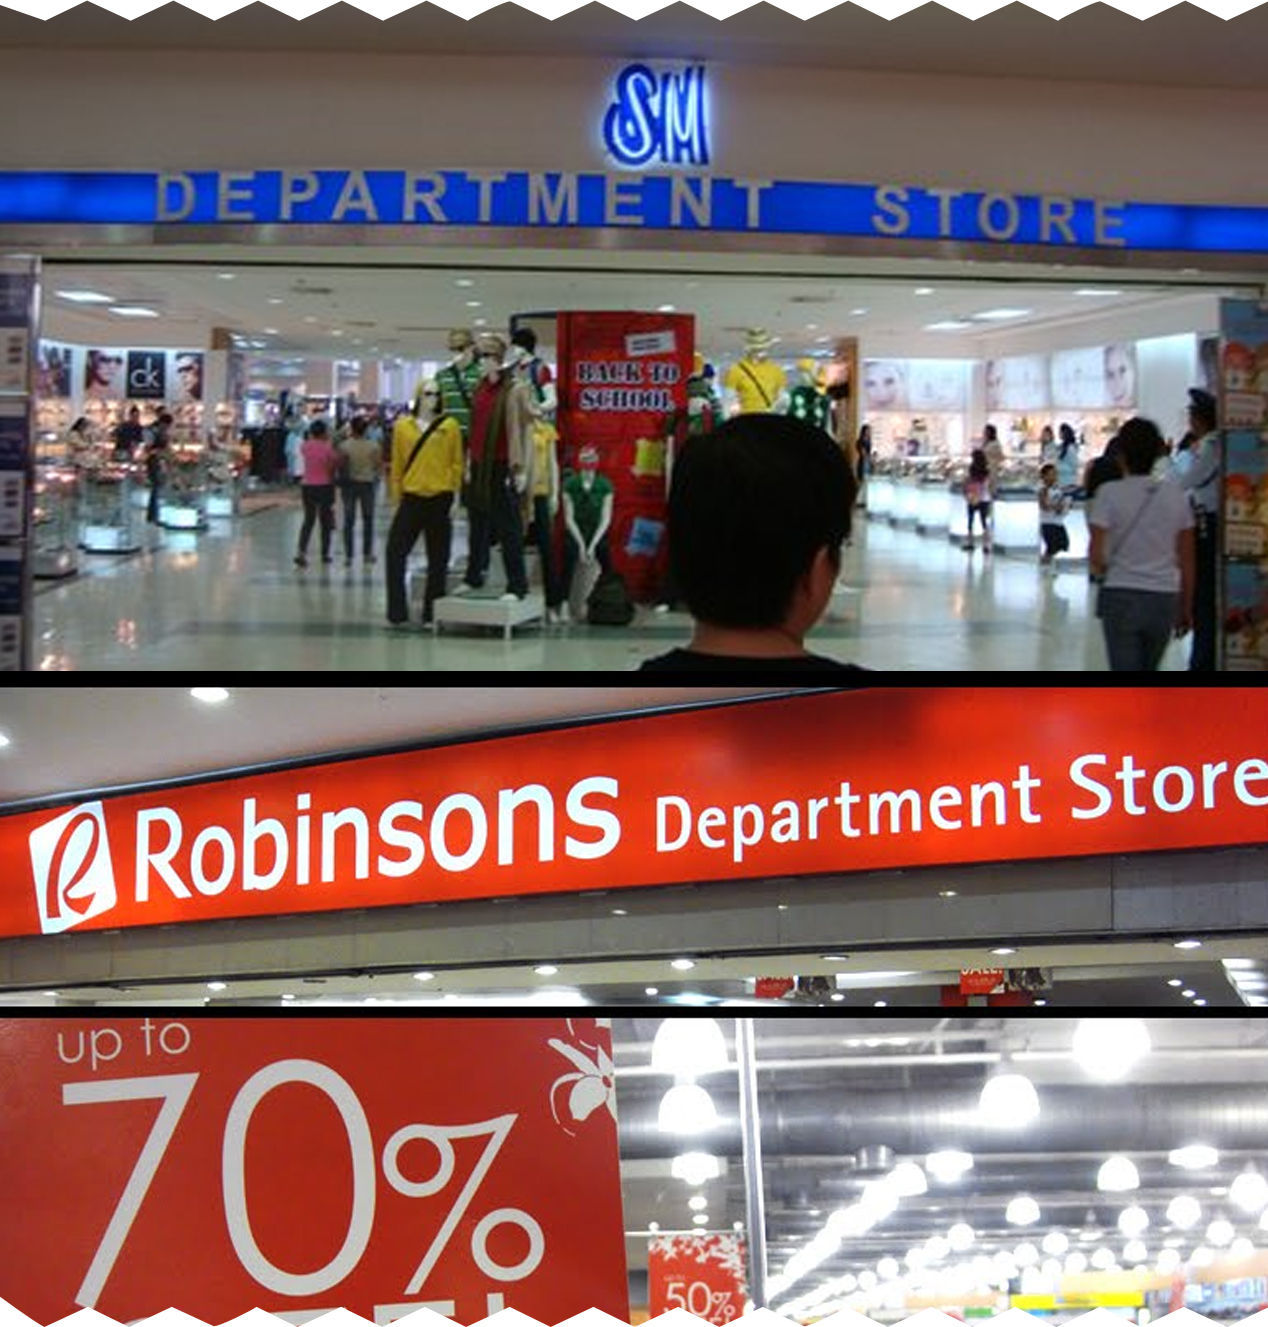 8 stores for travelers photo (1)